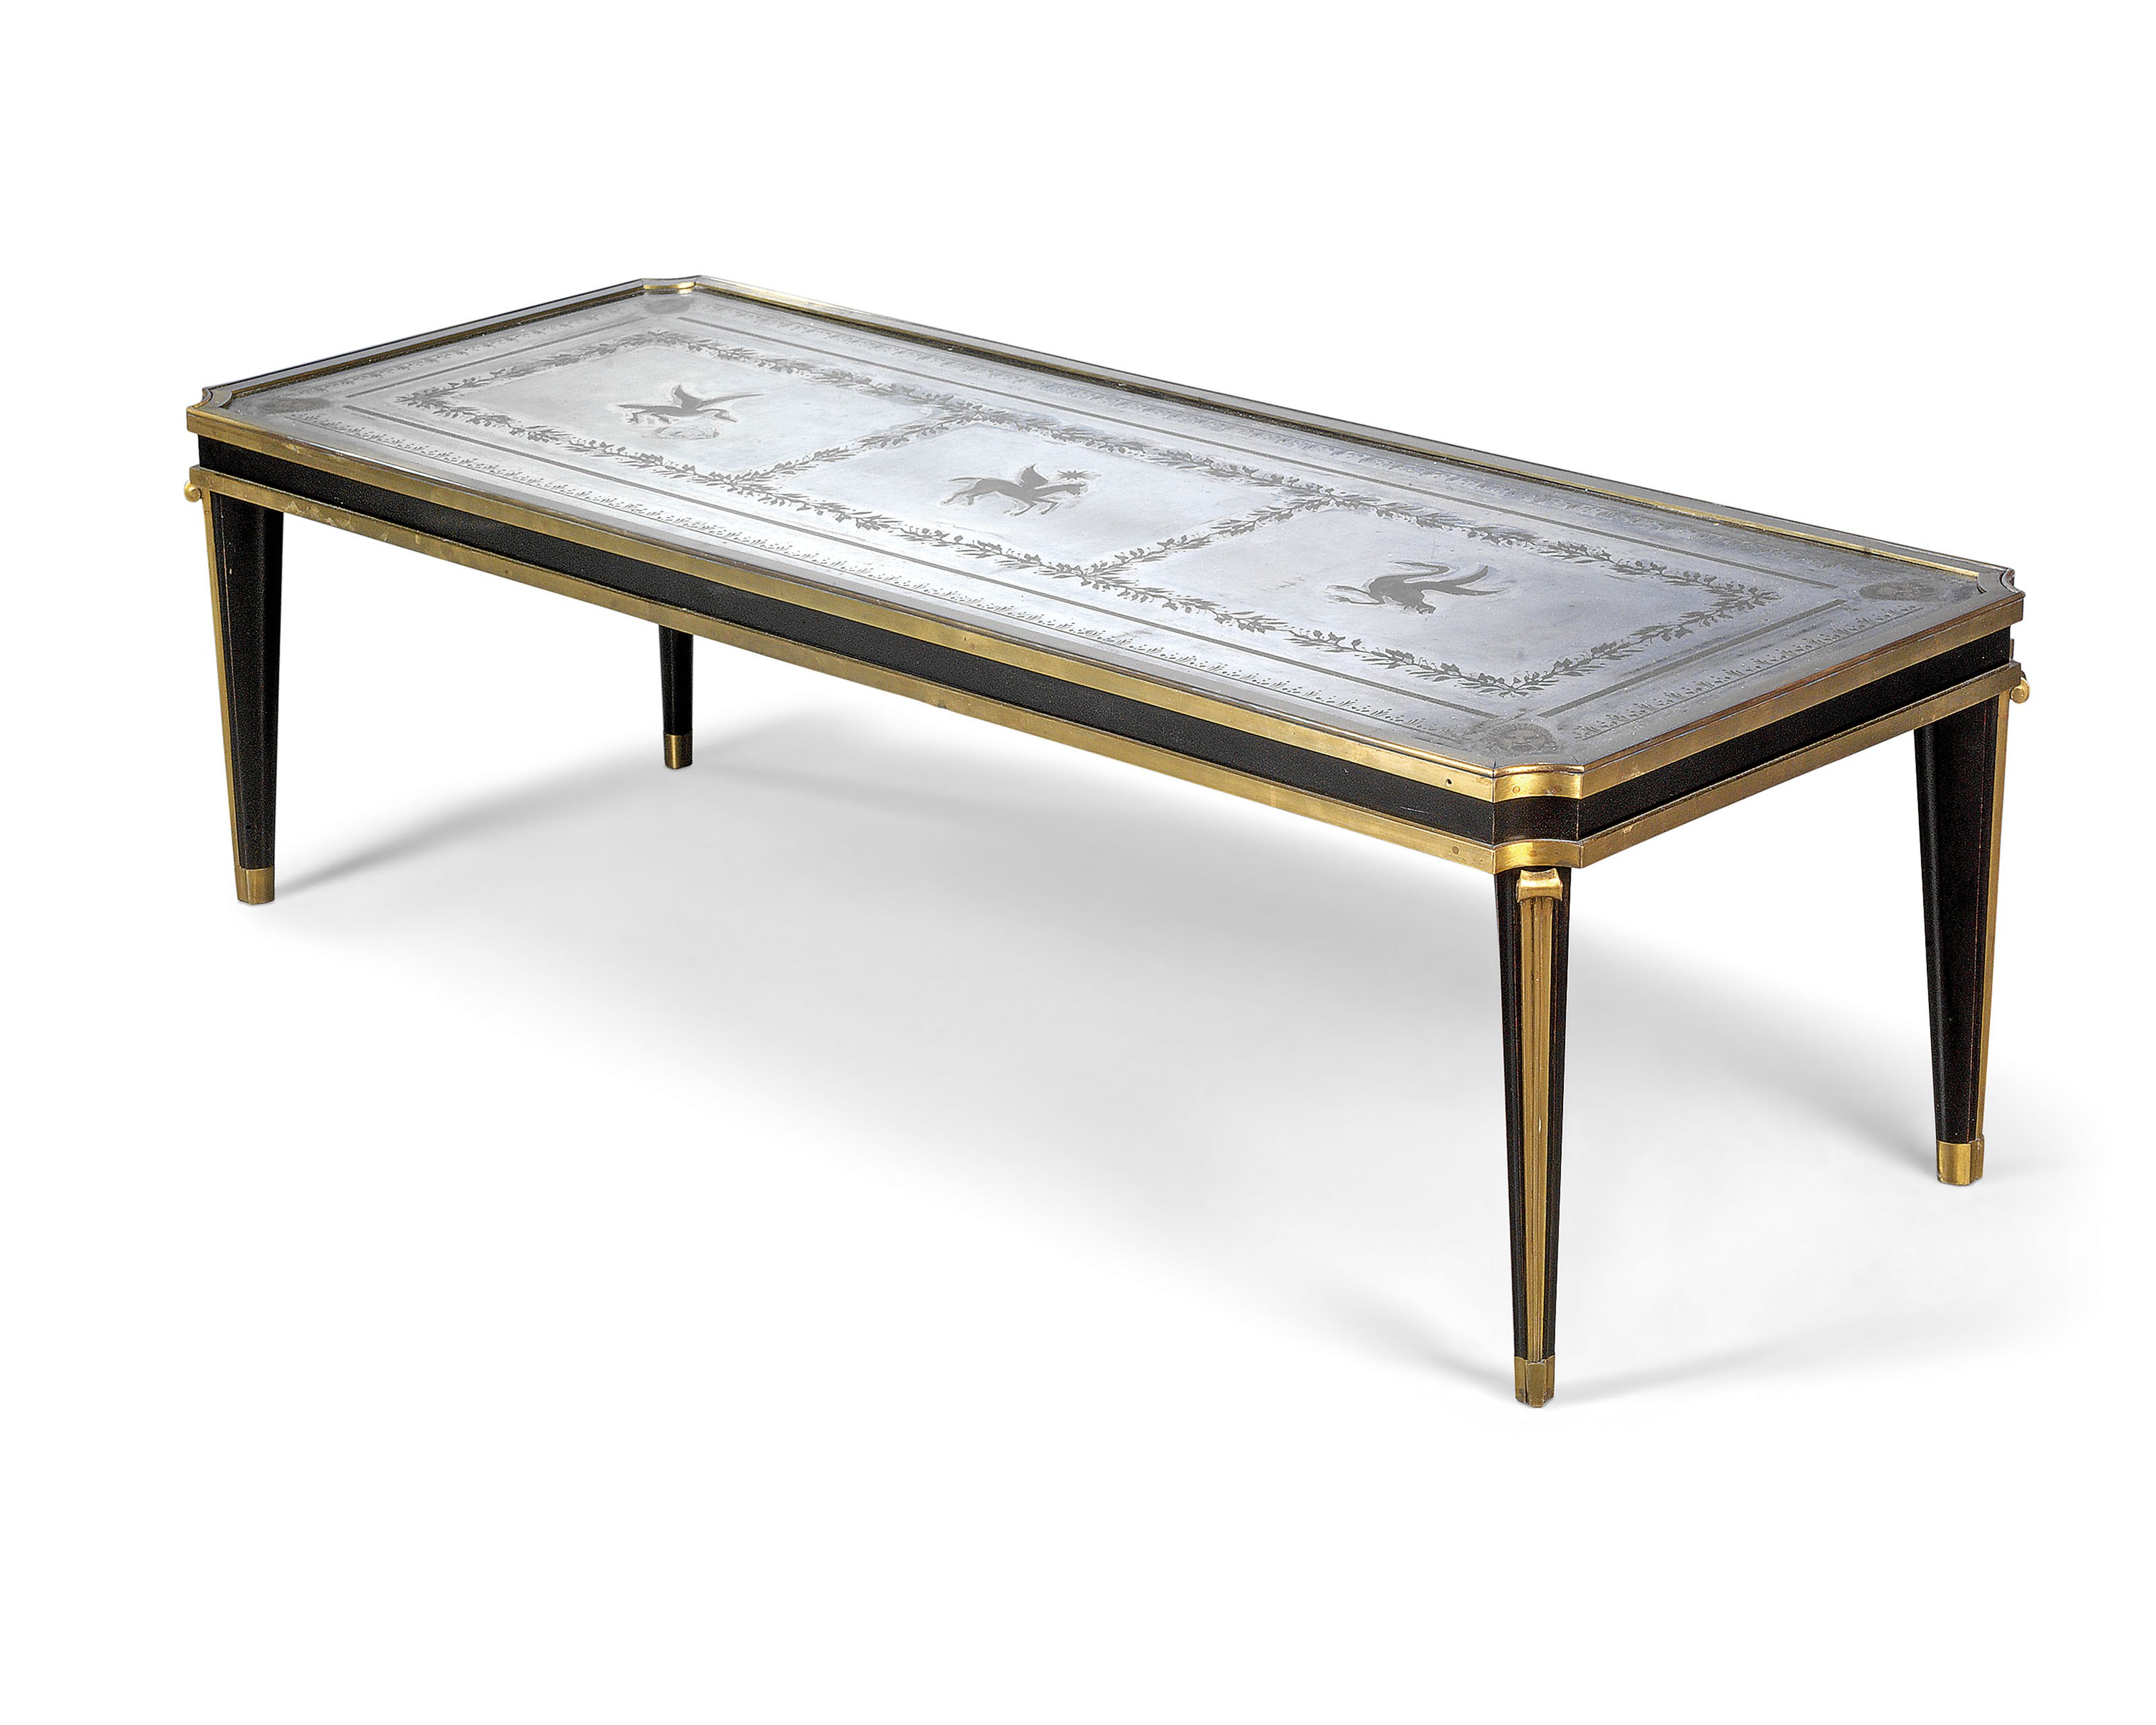 A GILT-BRONZE, EBONISED AND VERRE EGLOMISE OCCASIONAL TABLE